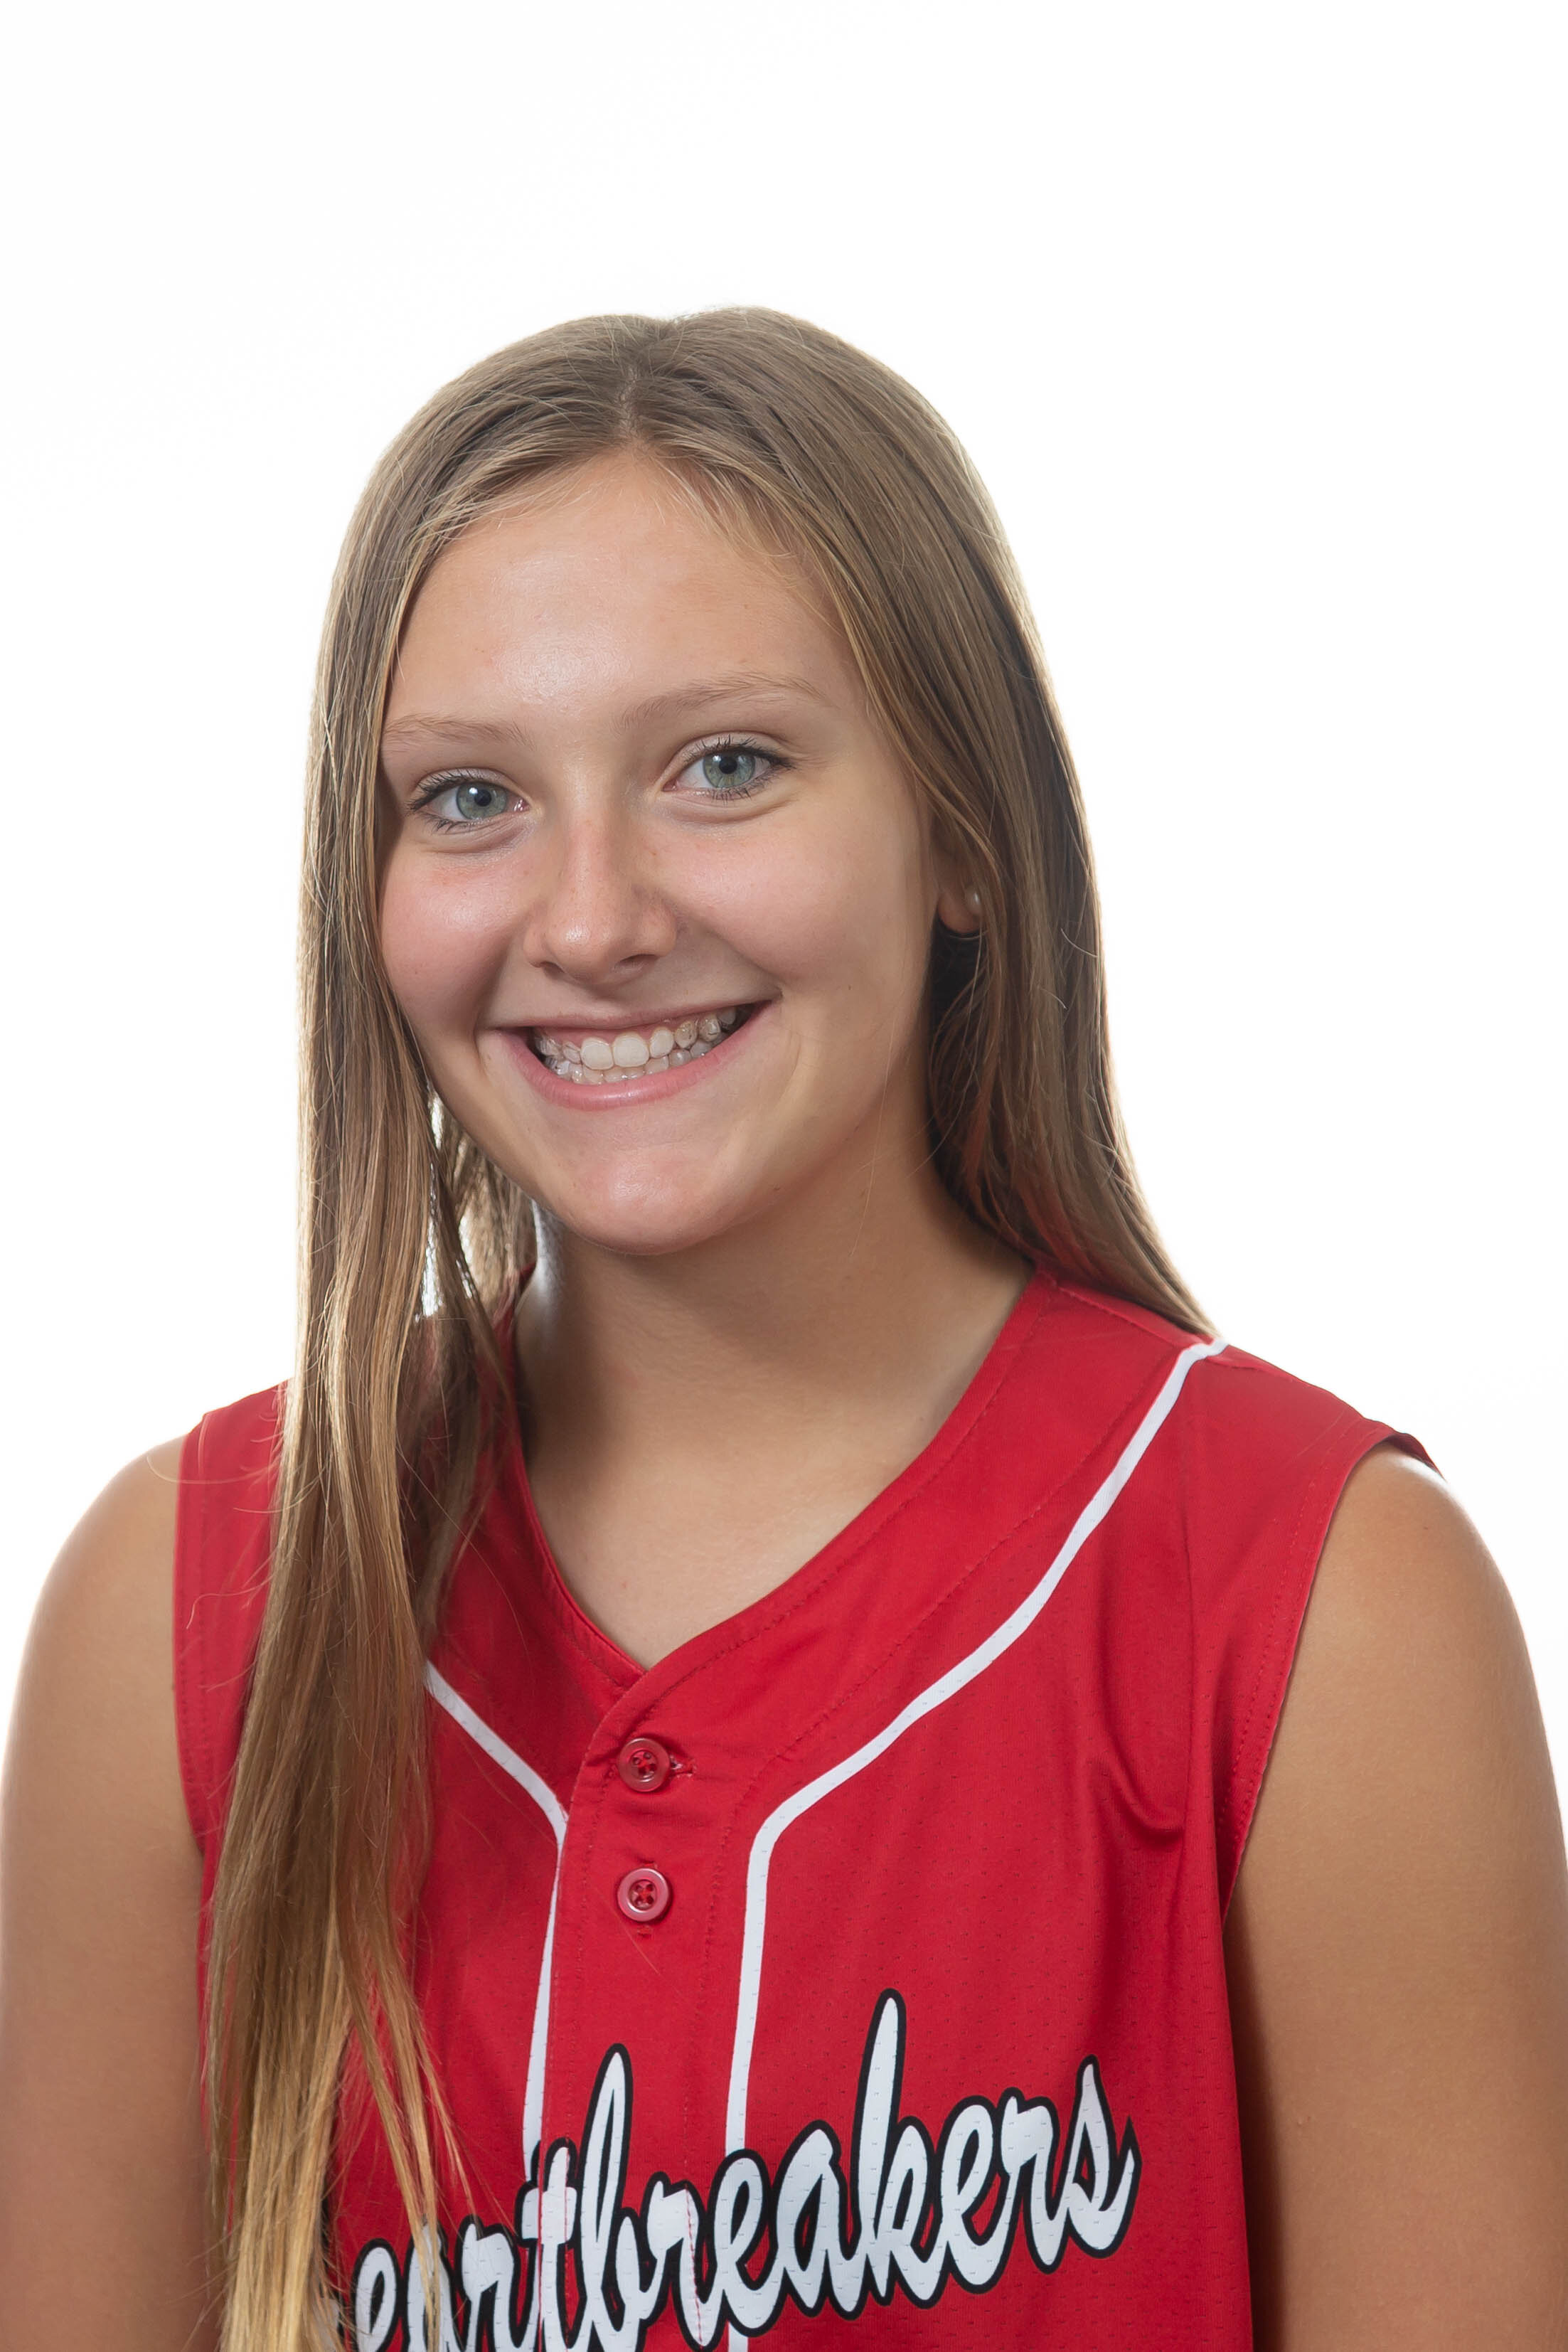 #15 Taylor Smith